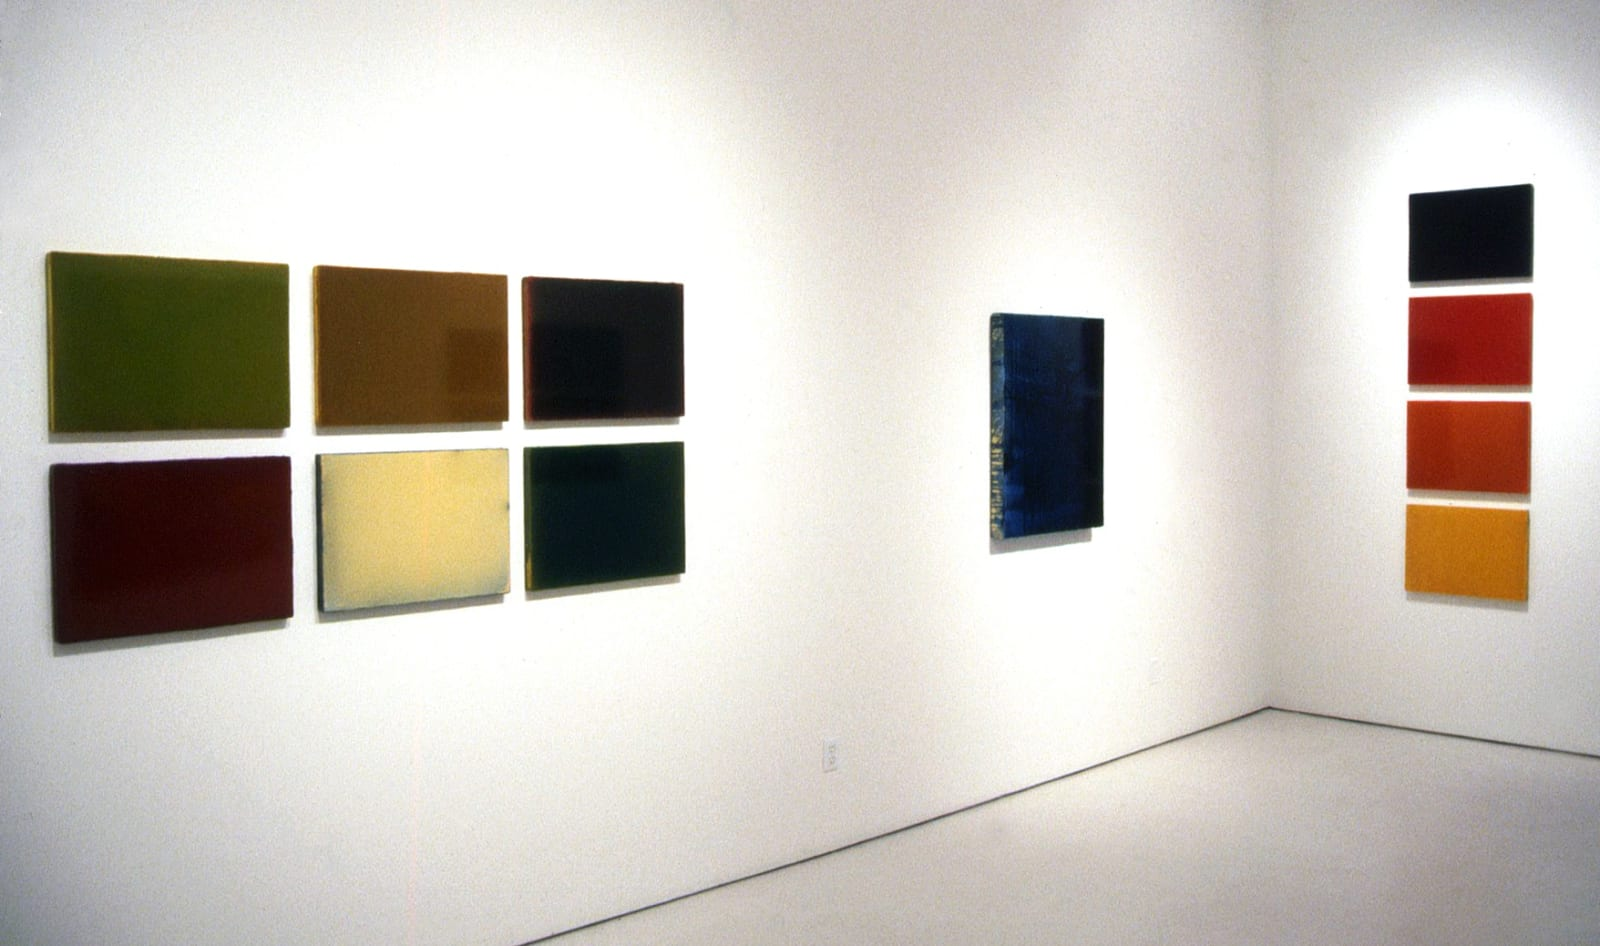 Stephen P. Curry | New Paintings